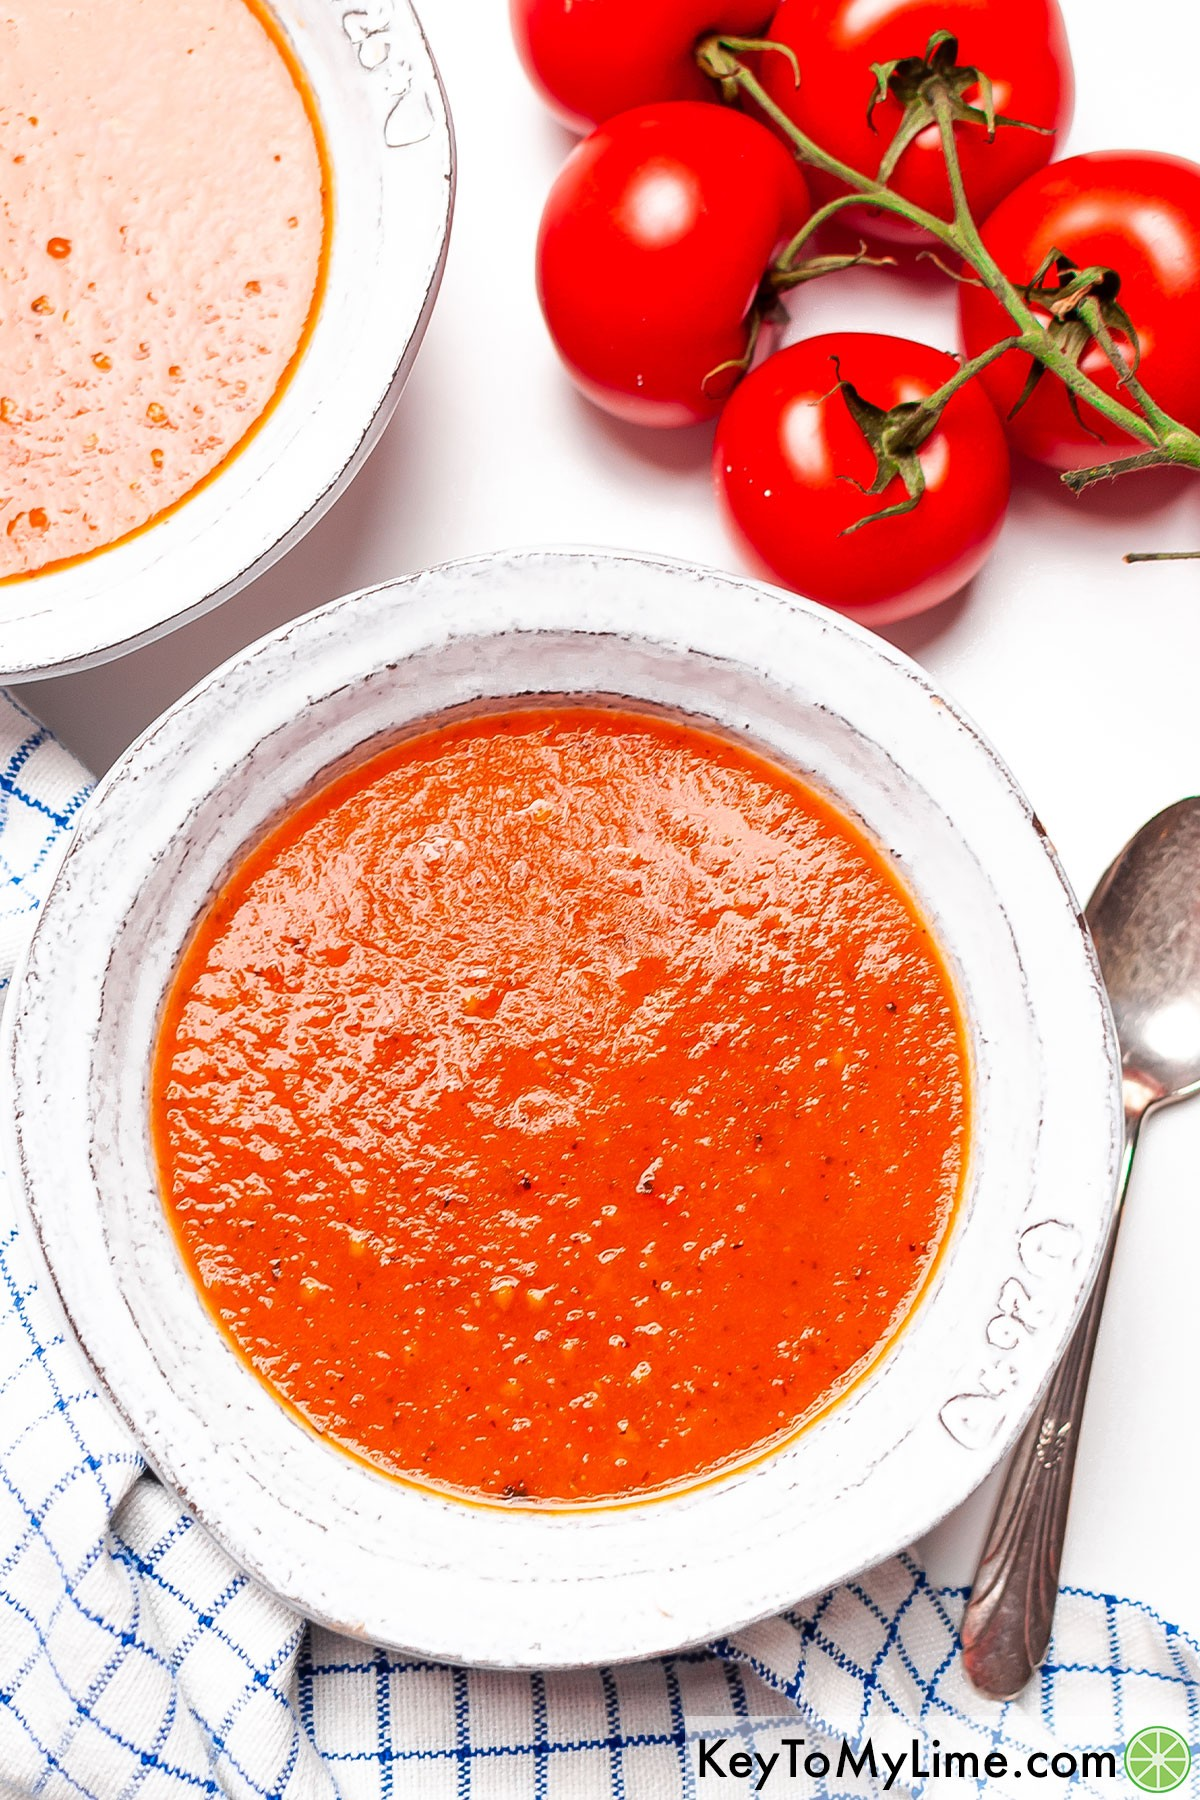 Two bowls of fresh homemade tomato soup.